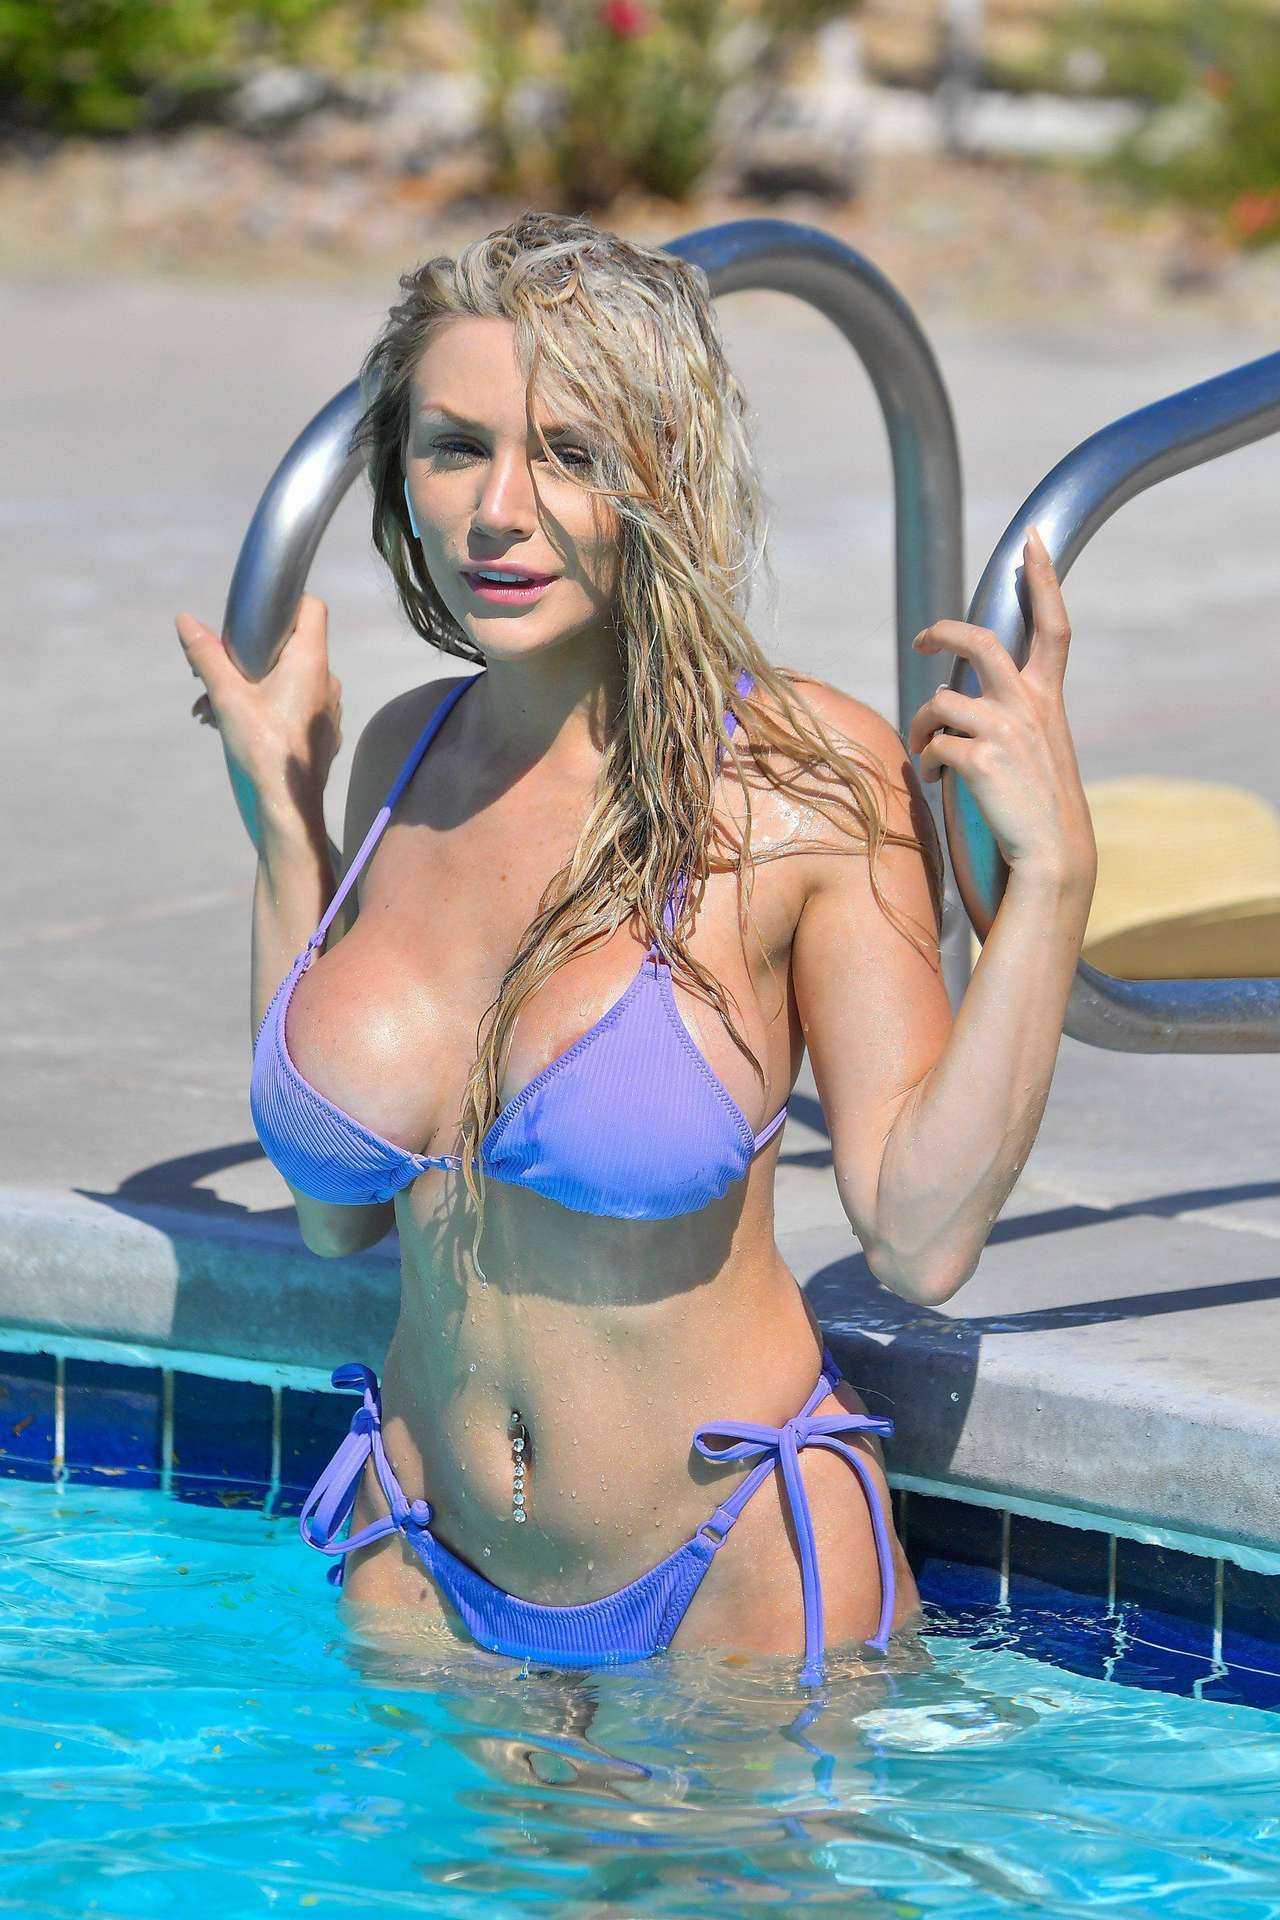 Courtney Stodden in a Small Bikini at a Pool in Palm Springs